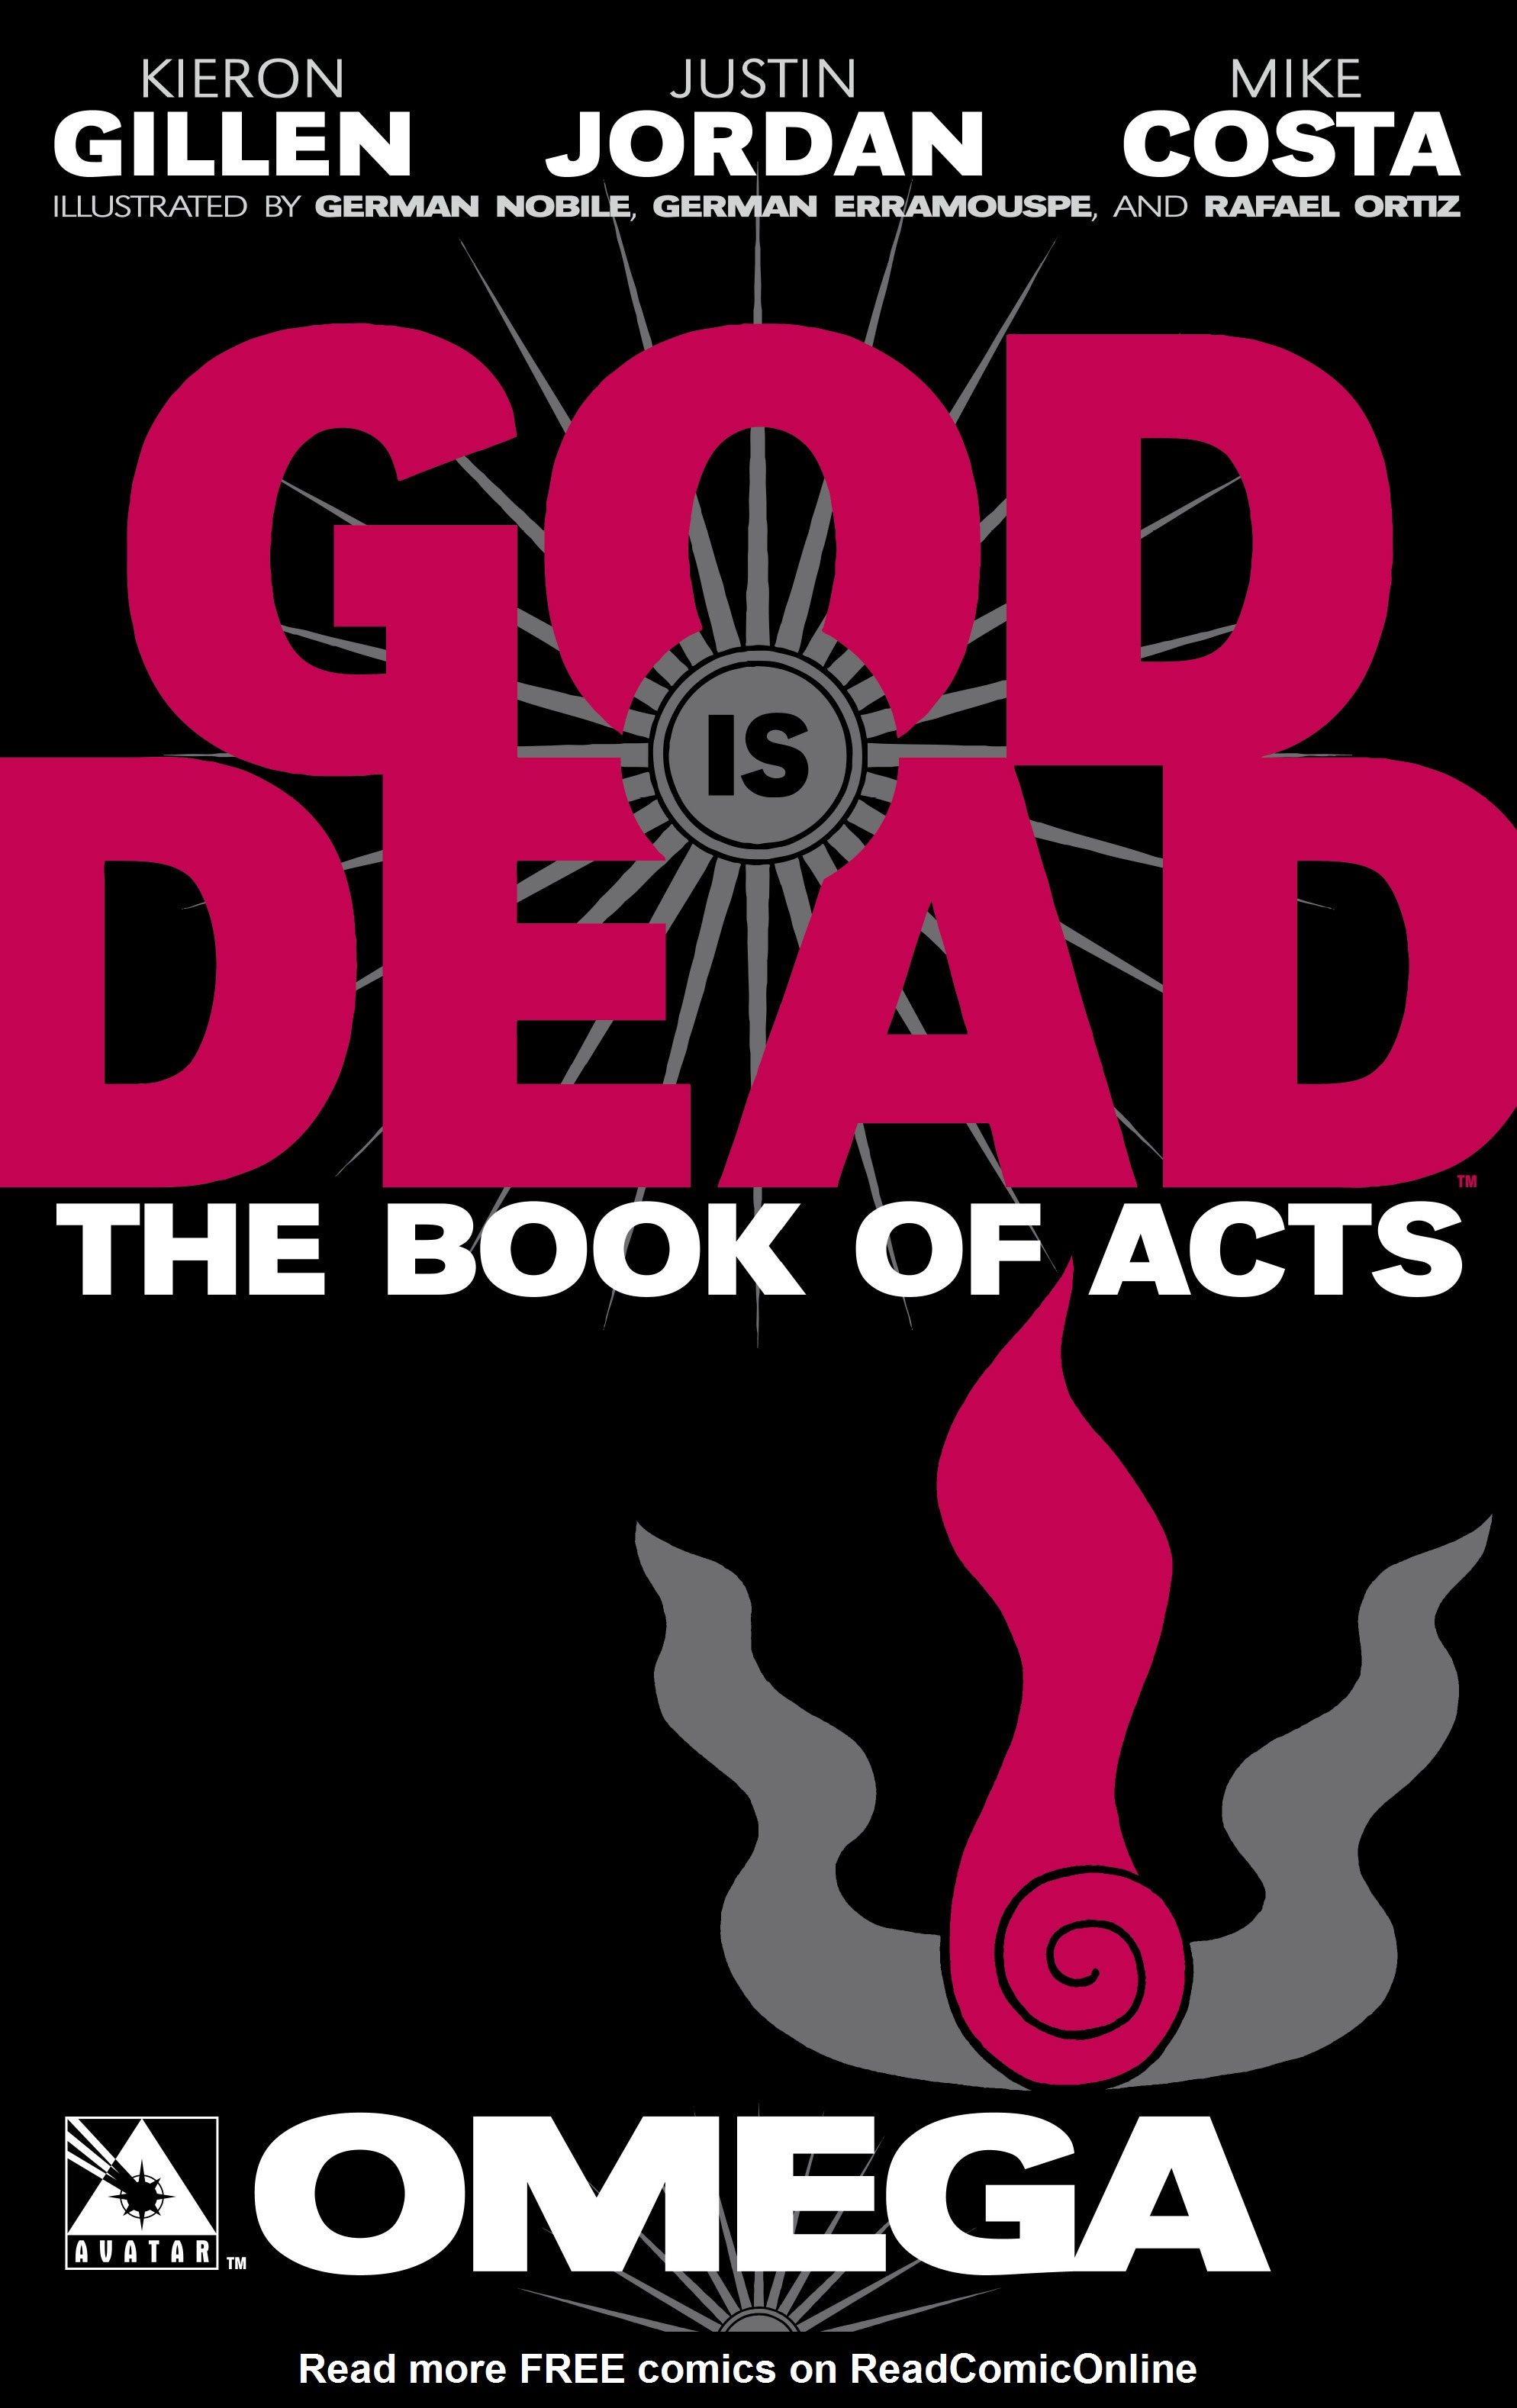 Read online God is Dead: Book of Acts comic -  Issue # Omega - 1